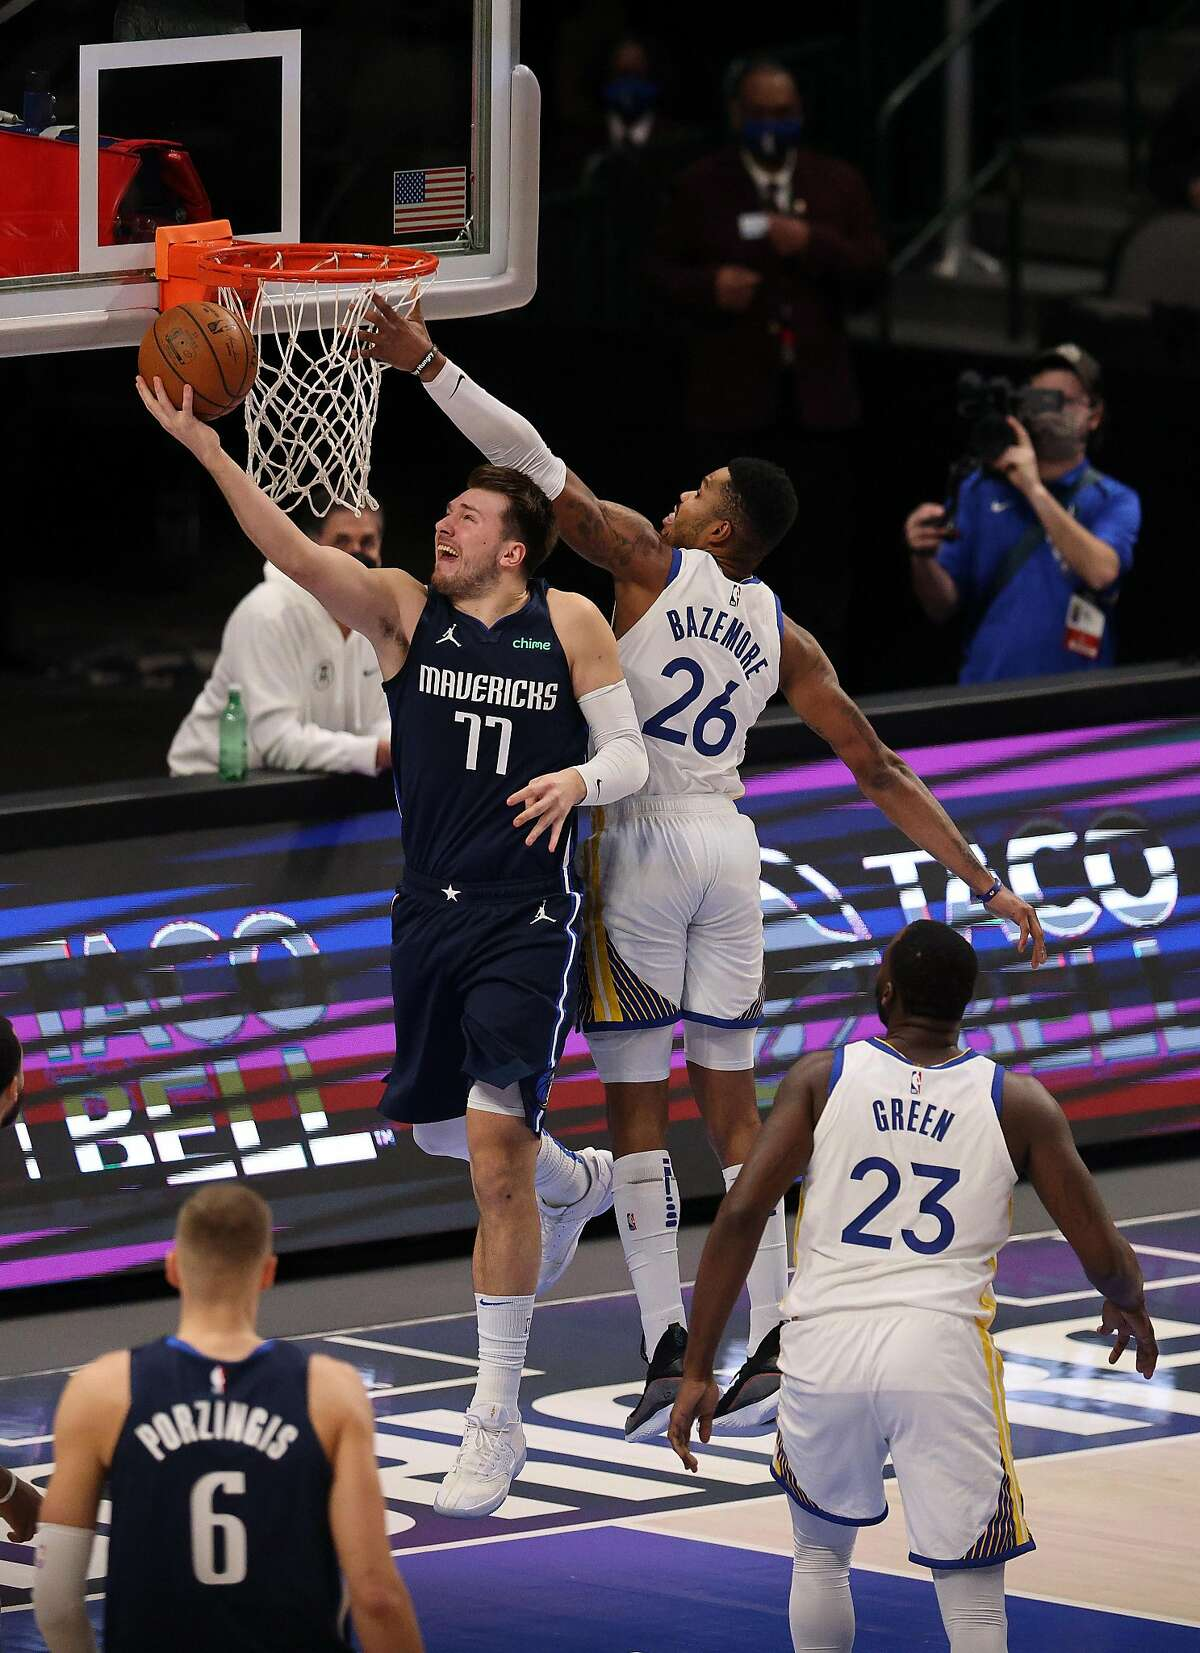 DALLAS, TEXAS - FEBRUARY 06: Luka Doncic #77 of the Dallas Mavericks takes a shot against Kent Bazemore #26 of the Golden State Warriors in the second quarter at American Airlines Center on February 06, 2021 in Dallas, Texas. NOTE TO USER: User expressly acknowledges and agrees that, by downloading and/or using this photograph, user is consenting to the terms and conditions of the Getty Images License Agreement. (Photo by Ronald Martinez/Getty Images)